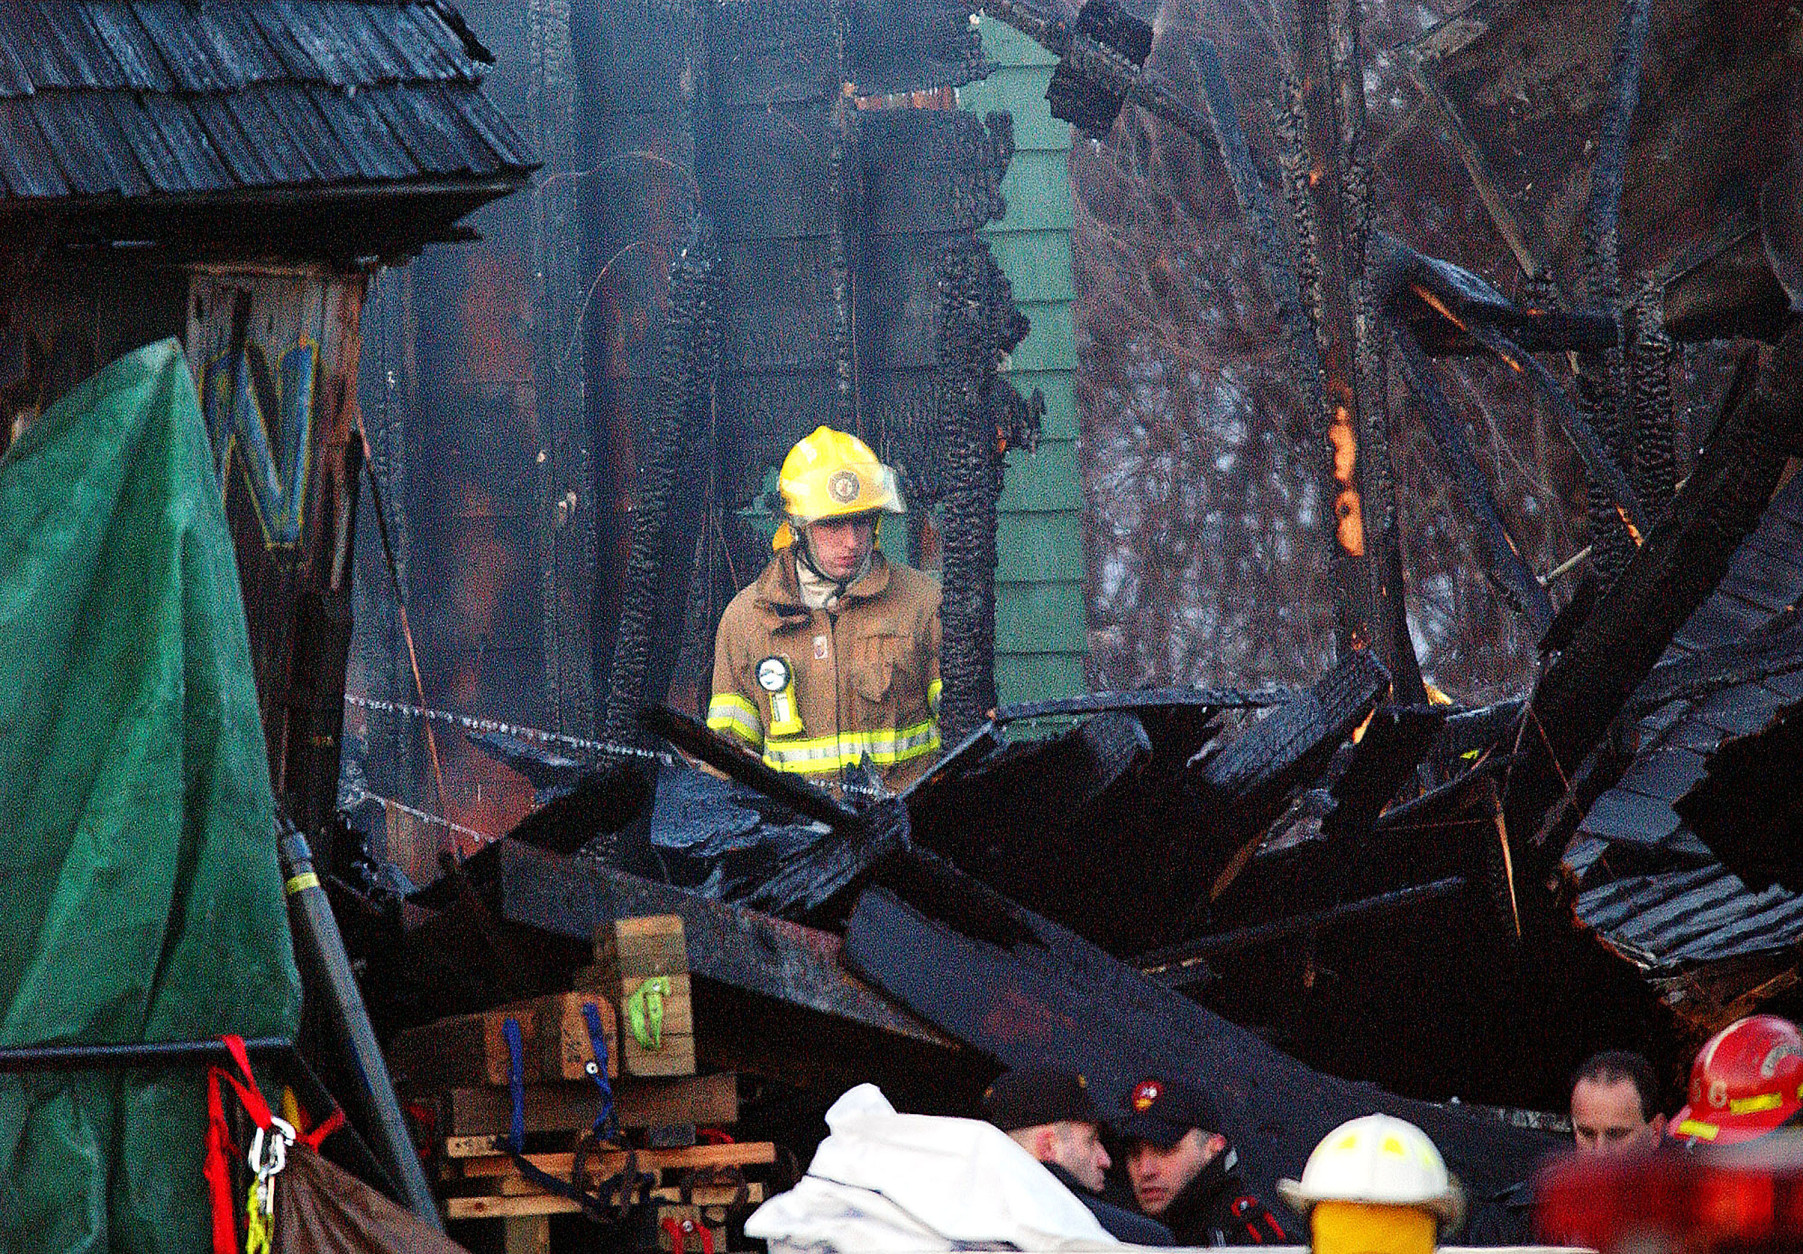 FILE - In this Feb. 21, 2003 file photo, a firefighter inspects the charred interior of the Station nightclub after a fatal fire at the club in West Warwick, R.I. A deadly nightclub fire at the Colectiv club in downtown Bucharest, Romania has claimed some dozens of lives and left at least over a hundred people injured early on Saturday, Oct. 31, 2015. Survivors and families of victims of a deadly nightclub blaze in Rhode Island over a decade ago say the tragedy in Bucharest, Romania, is sadly and eerily similar. (AP Photo/Michael Dwyer, File)